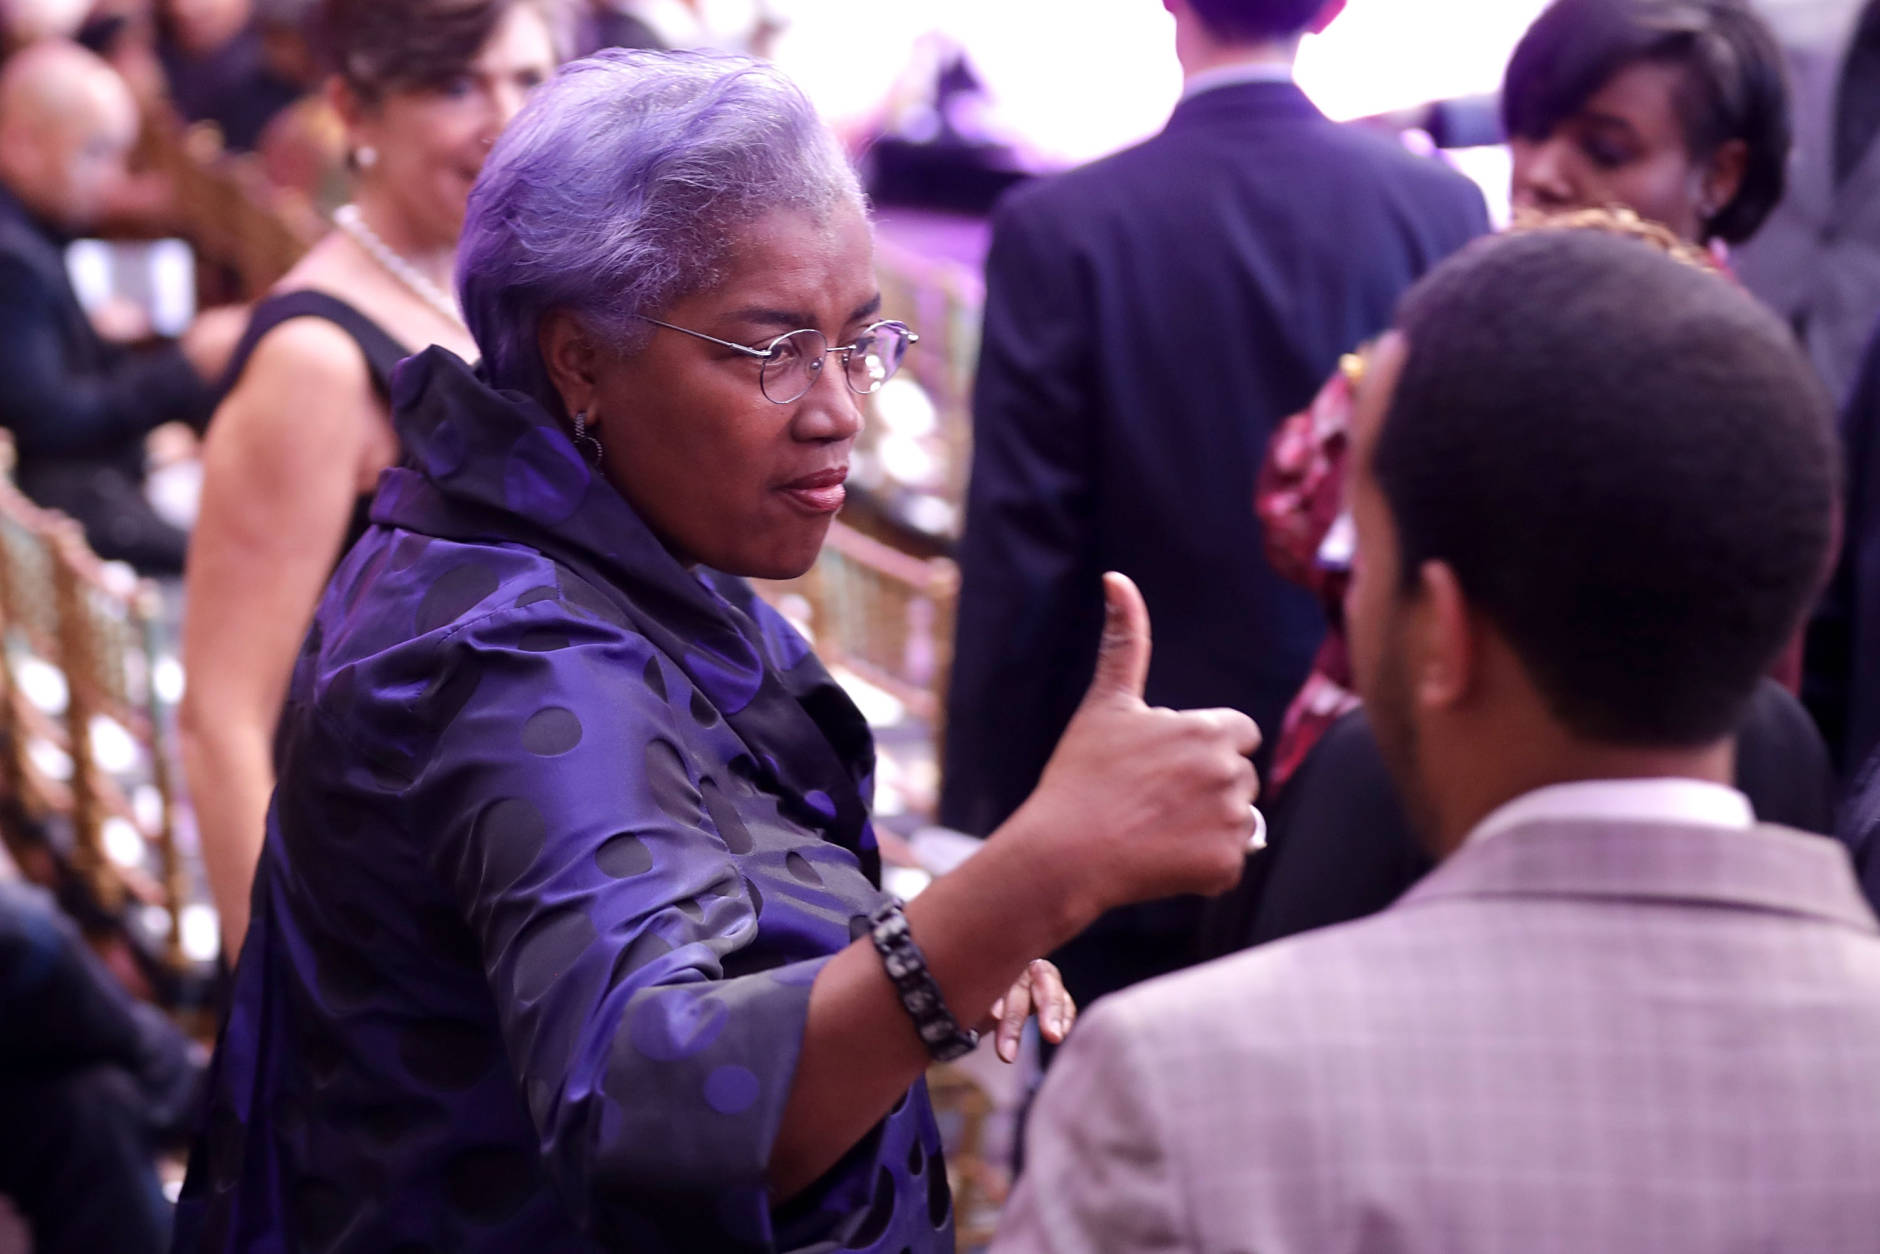 """WASHINGTON, DC - OCTOBER 21:  Democratic National Committee Interim Chairperson Donna Brazile attends the BET's 'Love and Happiness: A Musical Experience"""" in a tent on the South Lawn of the White House October 21, 2016 in Washington, DC. The show will feature performances by Usher, Jill Scott, Common, The Roots, Bell Biv DeVoe, Janelle Monae, De La Soul, Yolanda Adams, Michelle Williams and Kiki Sheard, along will appearances by actors Samuel L. Jackson, Jesse Williams and Angela Bassett.  (Photo by Chip Somodevilla/Getty Images)"""